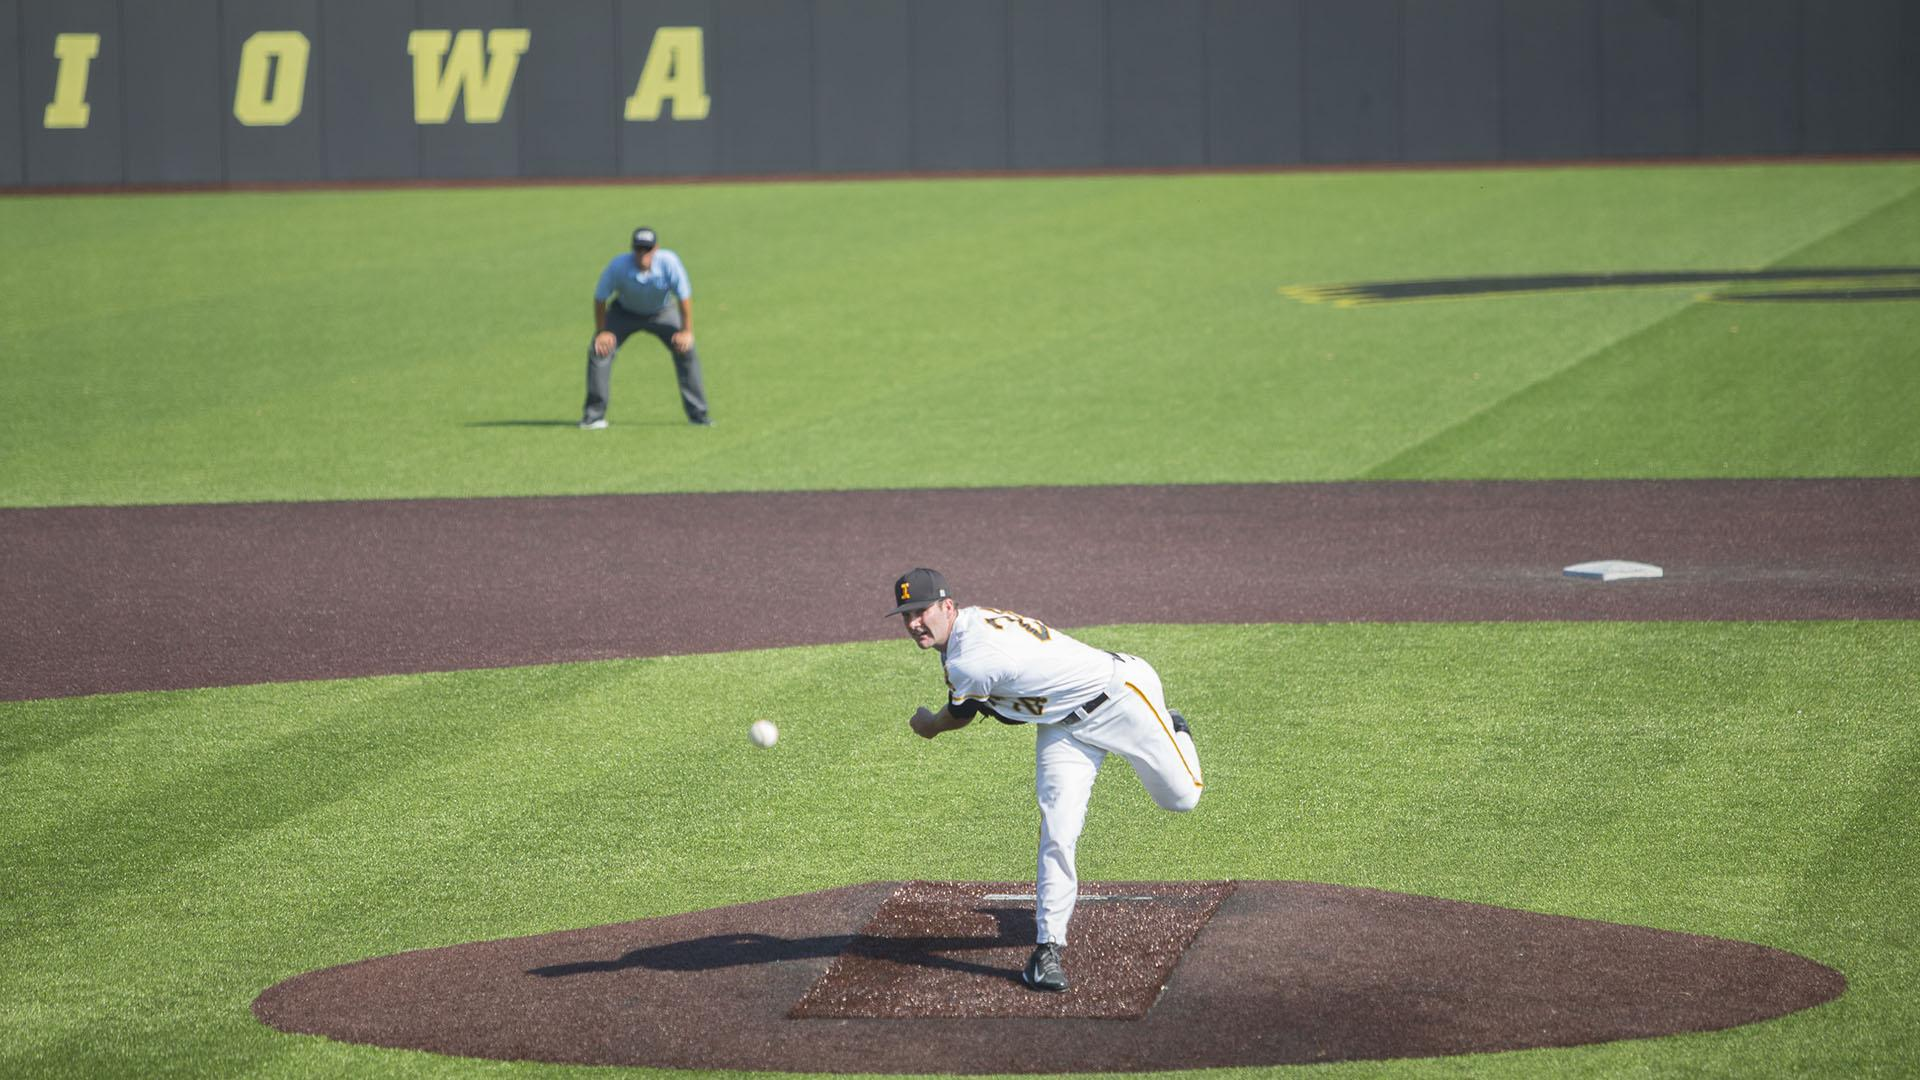 Iowa's Nick Allgeyer pitches during the Iowa/Ontario baseball game at Duane Banks Field on Saturday, Sept. 23, 2017. The Hawkeyes defeated the Blue Jays, 17-2. (Lily Smith/The Daily Iowan)